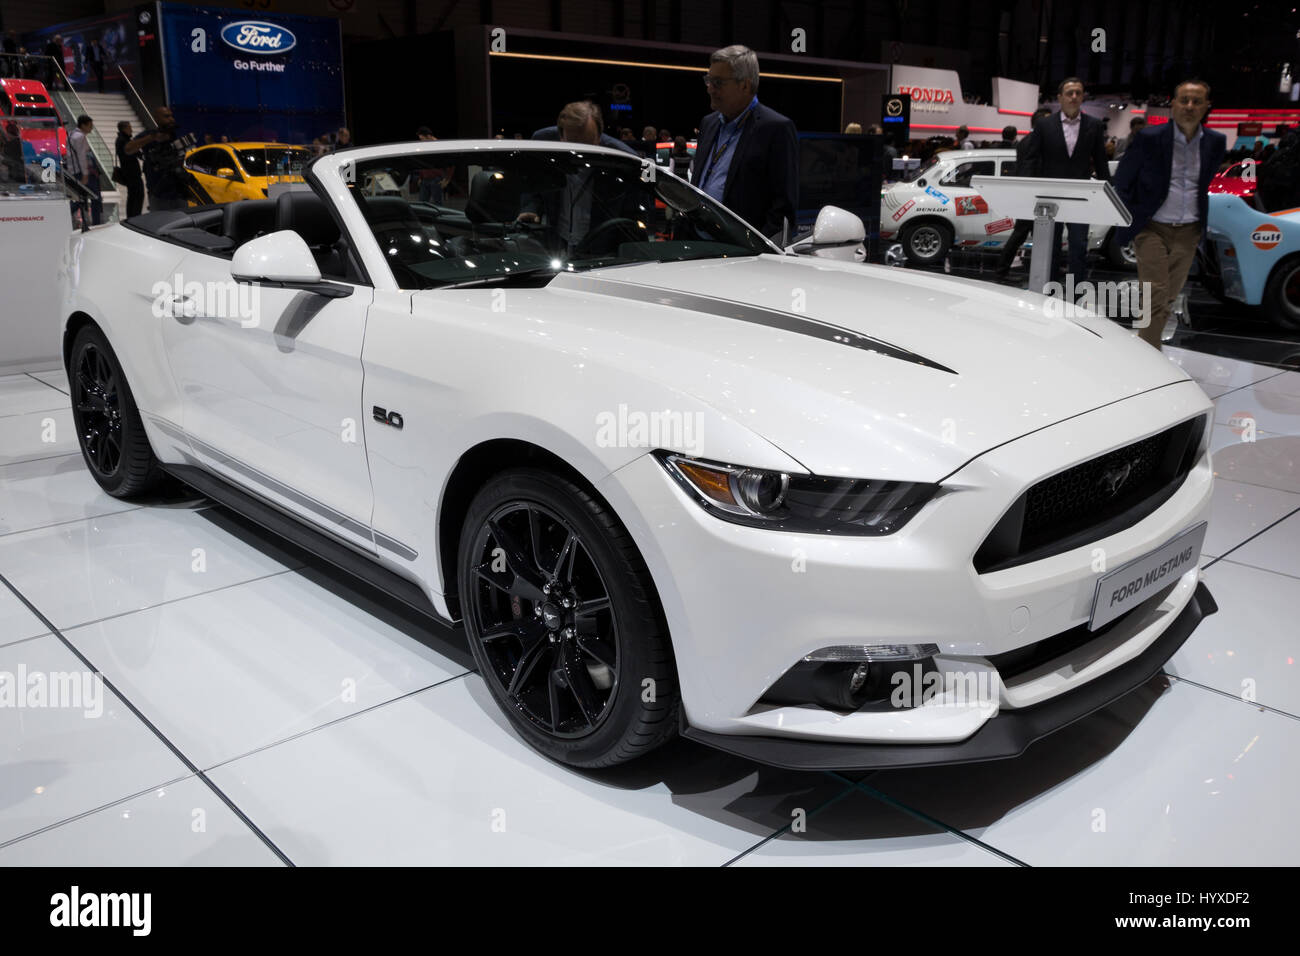 c61396840d Sports Car Ford Mustang Convertible Stock Photos   Sports Car Ford ...